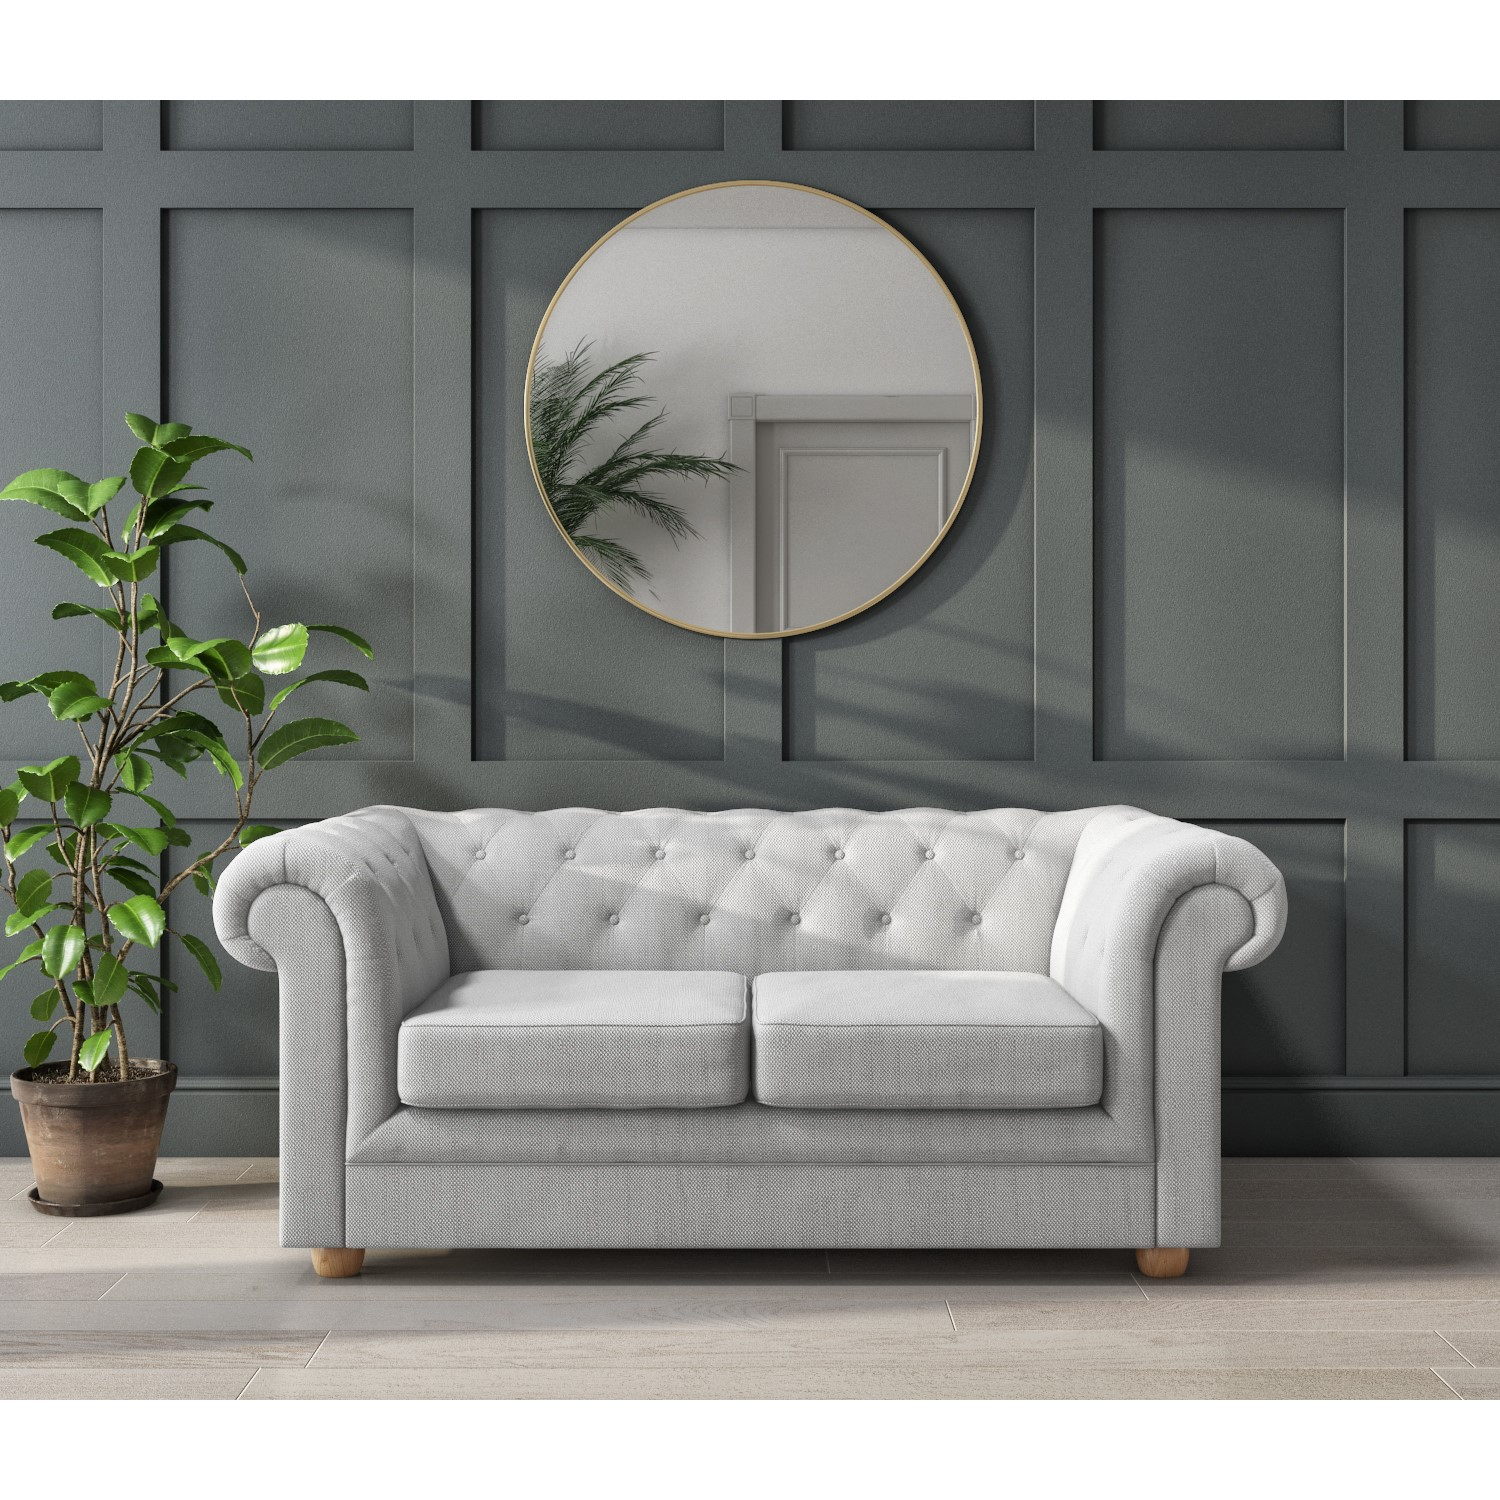 Bronte 2 Seater Chesterfield Sofa in Light Grey Fabric